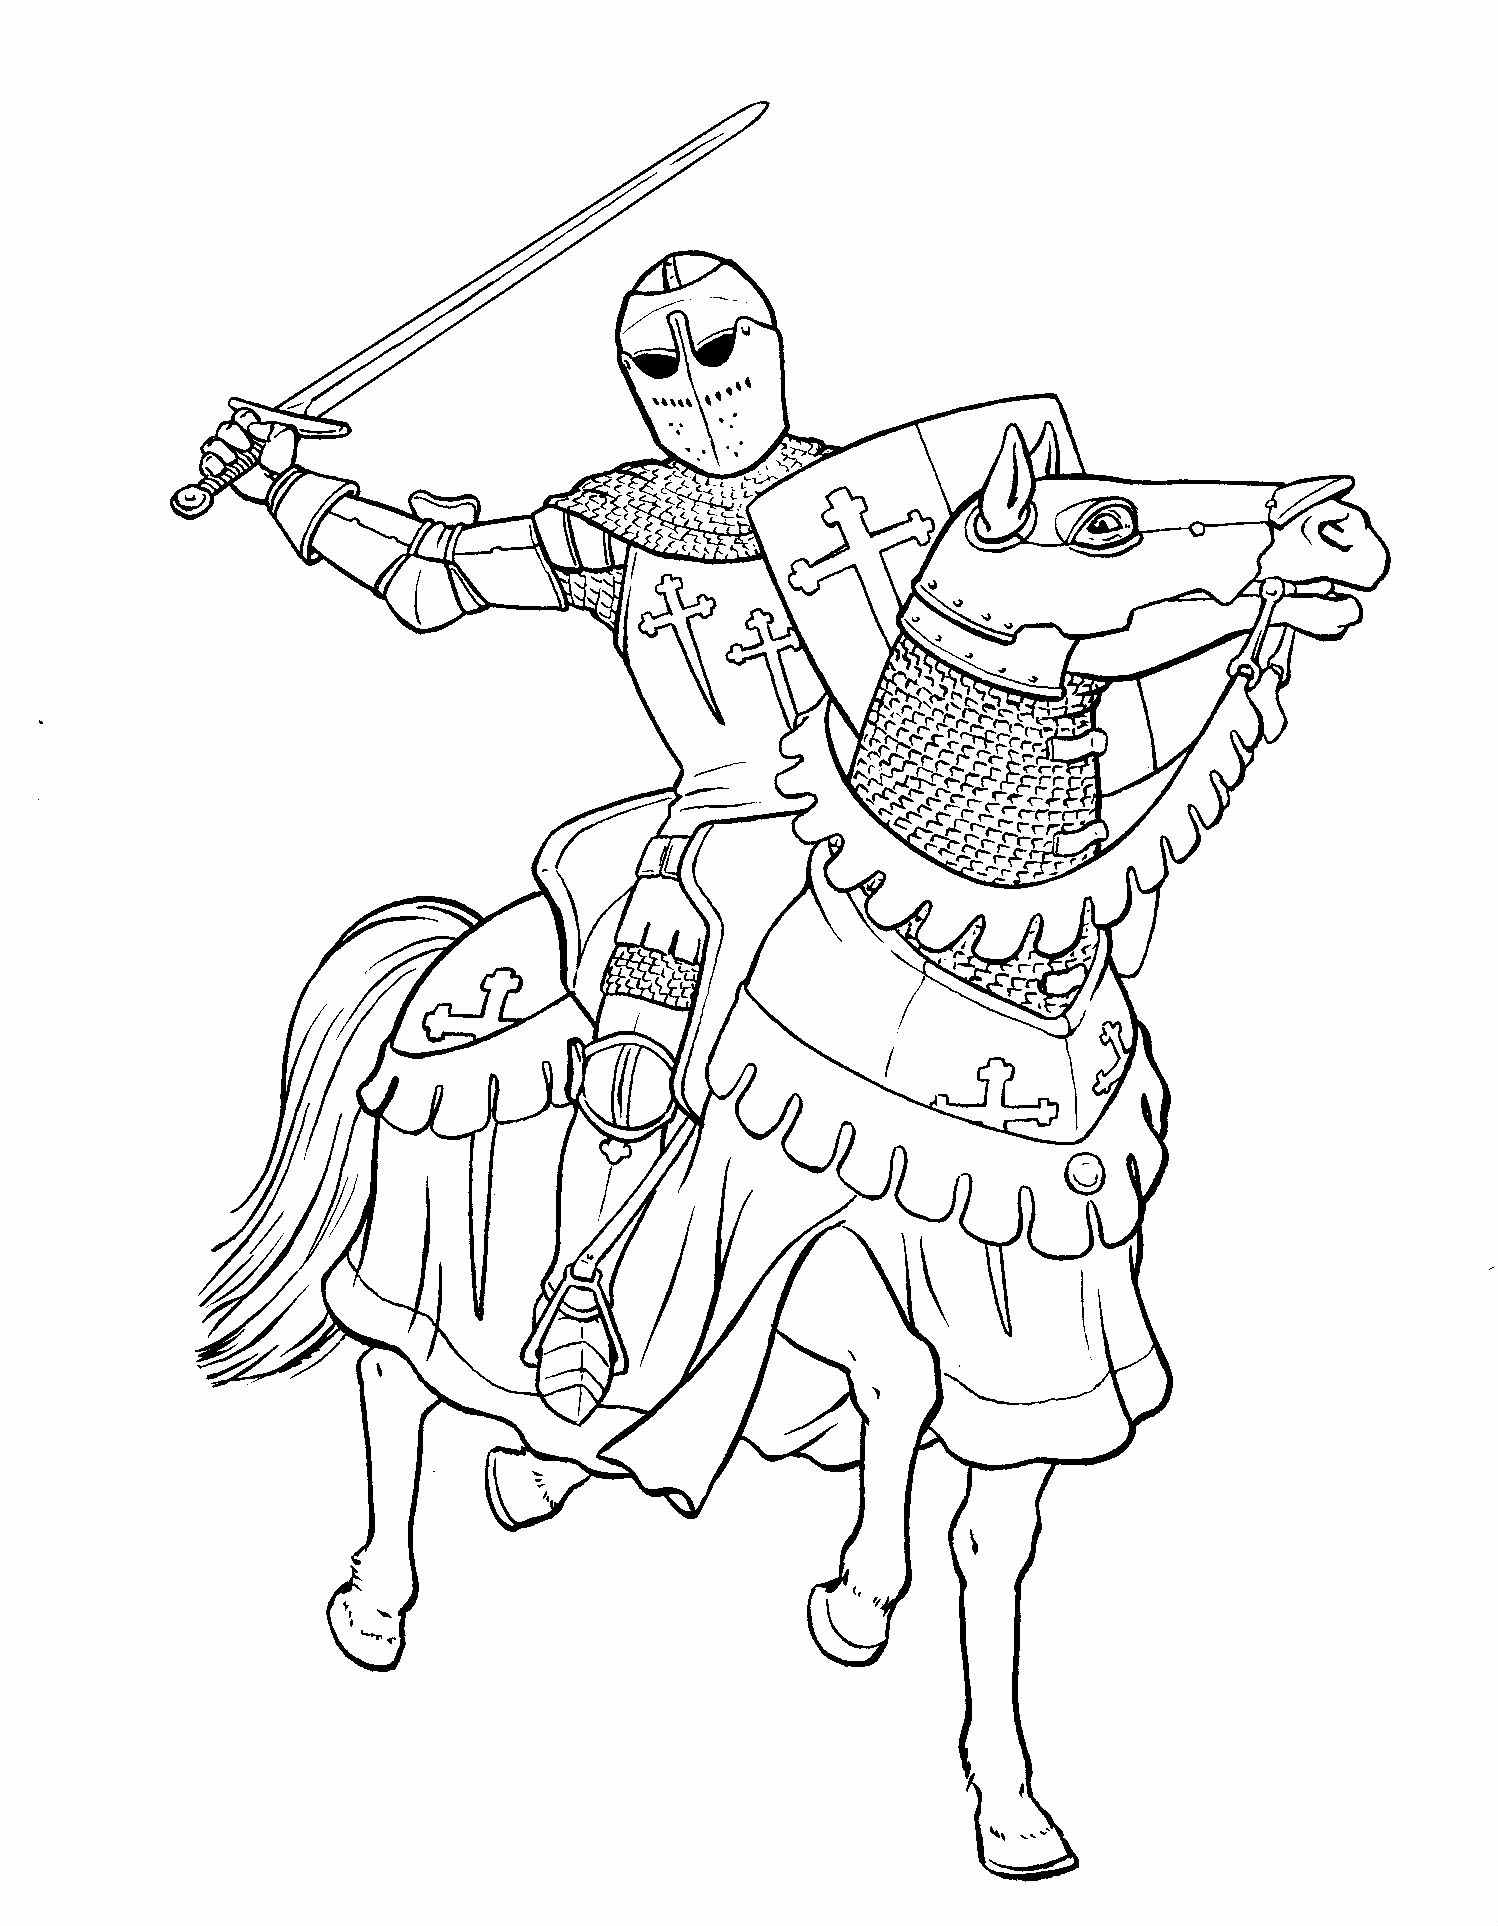 Online Coloring Pages Coloring Pages For Kids : Coloring Pages For